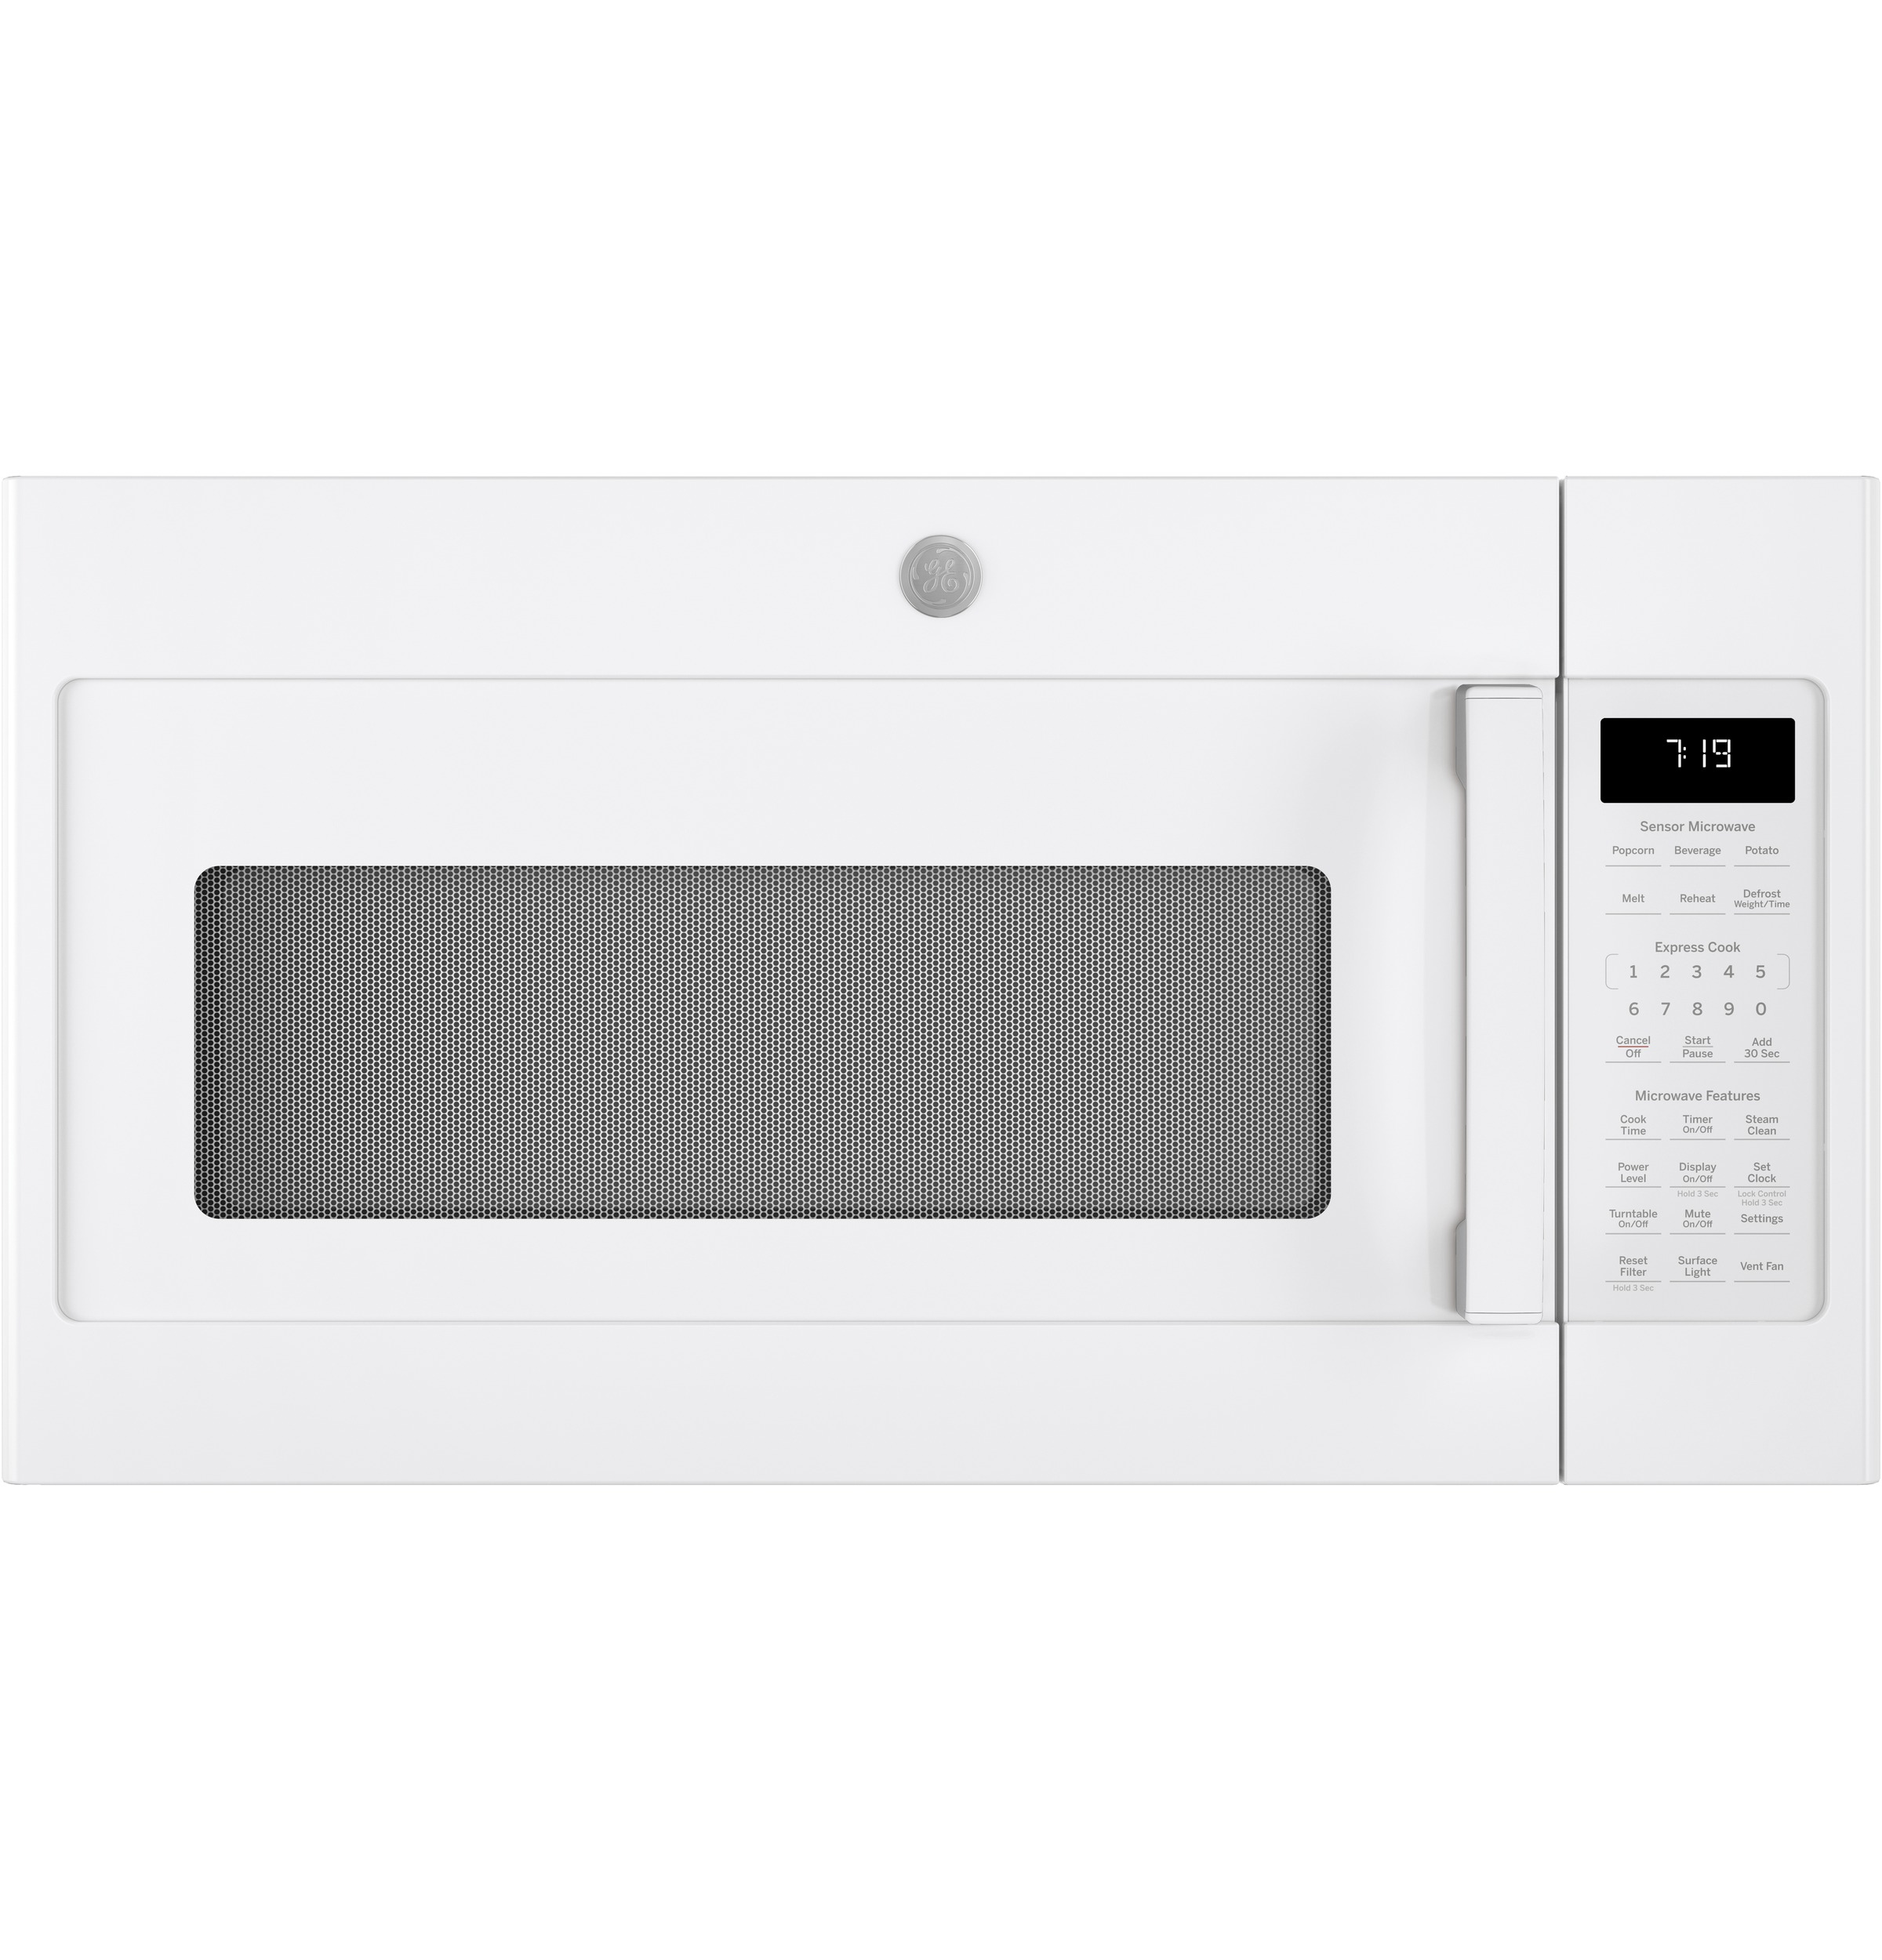 GE GE® 1.9 Cu. Ft. Over-the-Range Sensor Microwave Oven